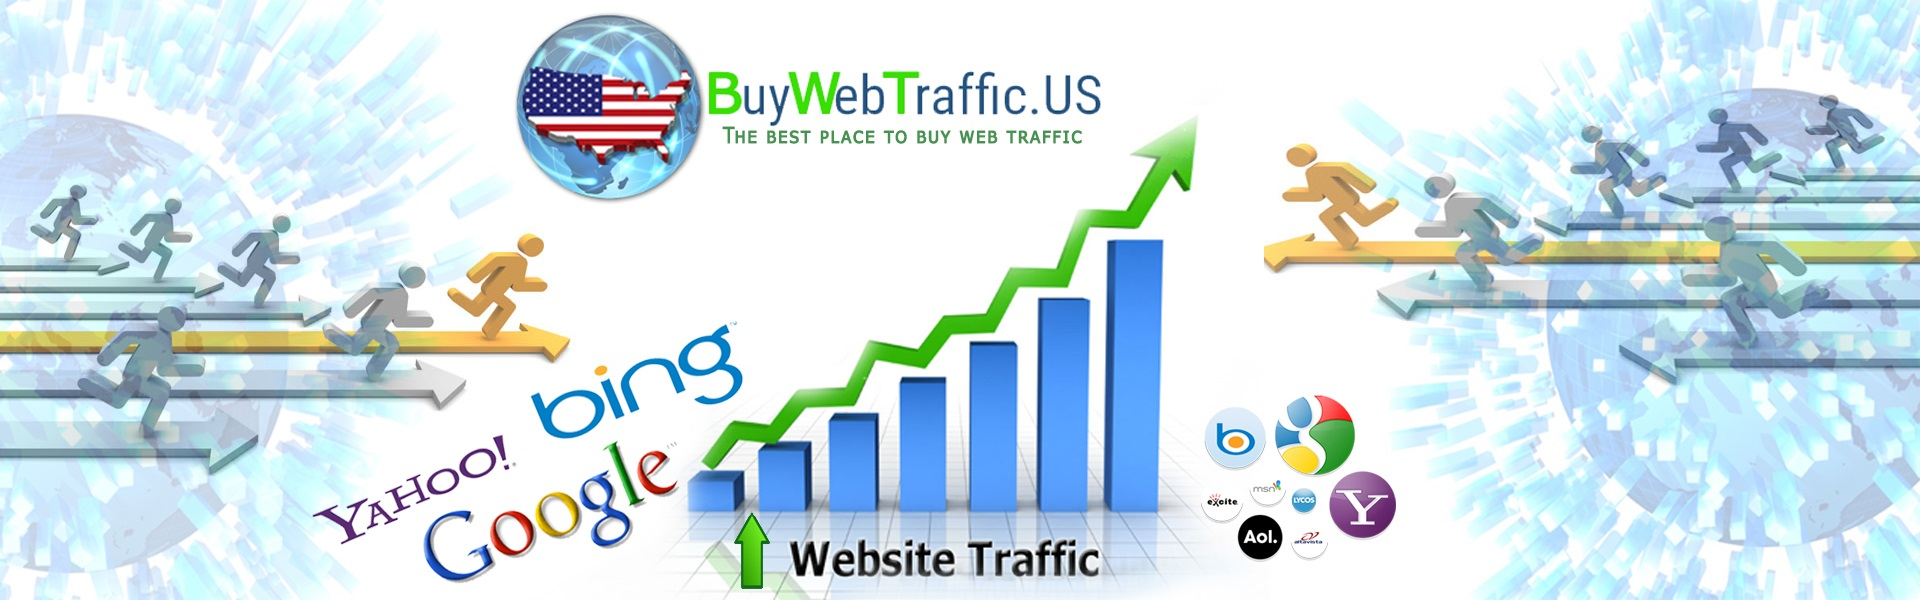 BuyWebTraffic.US 4th page